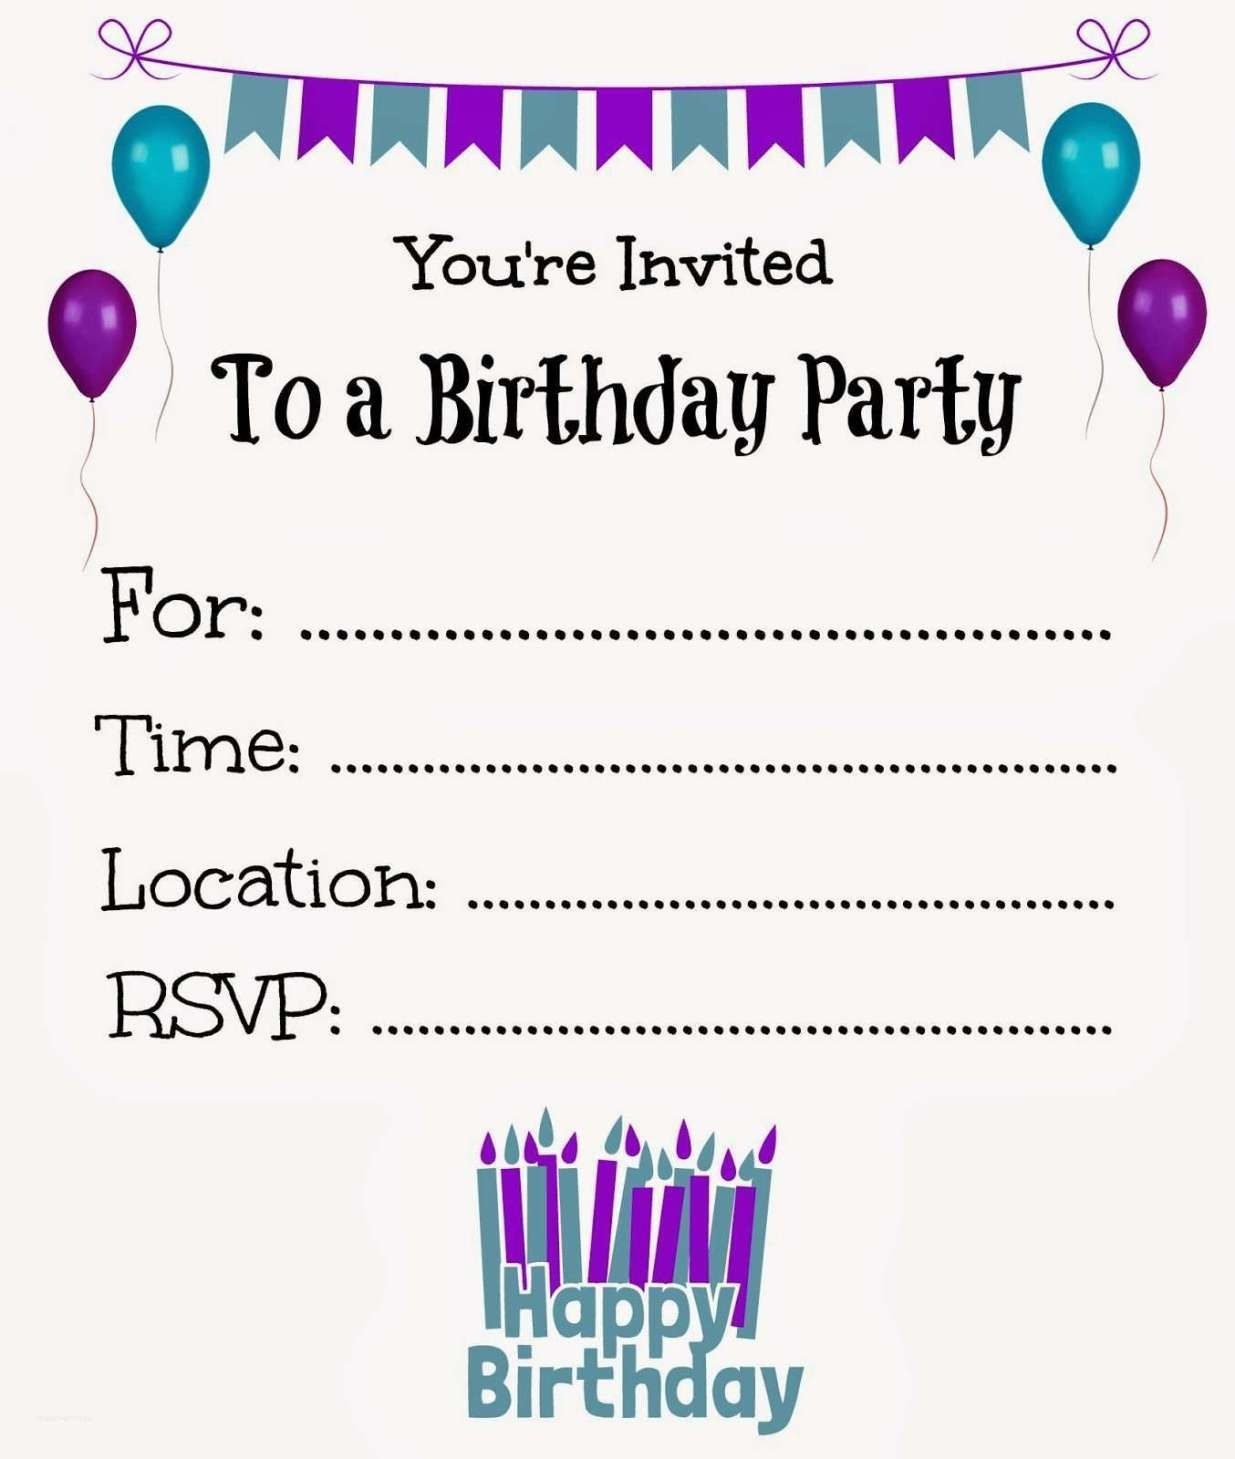 New Free Online Printable Birthday Party Invitations | Online - Birthday Party Invitations Online Free Printable